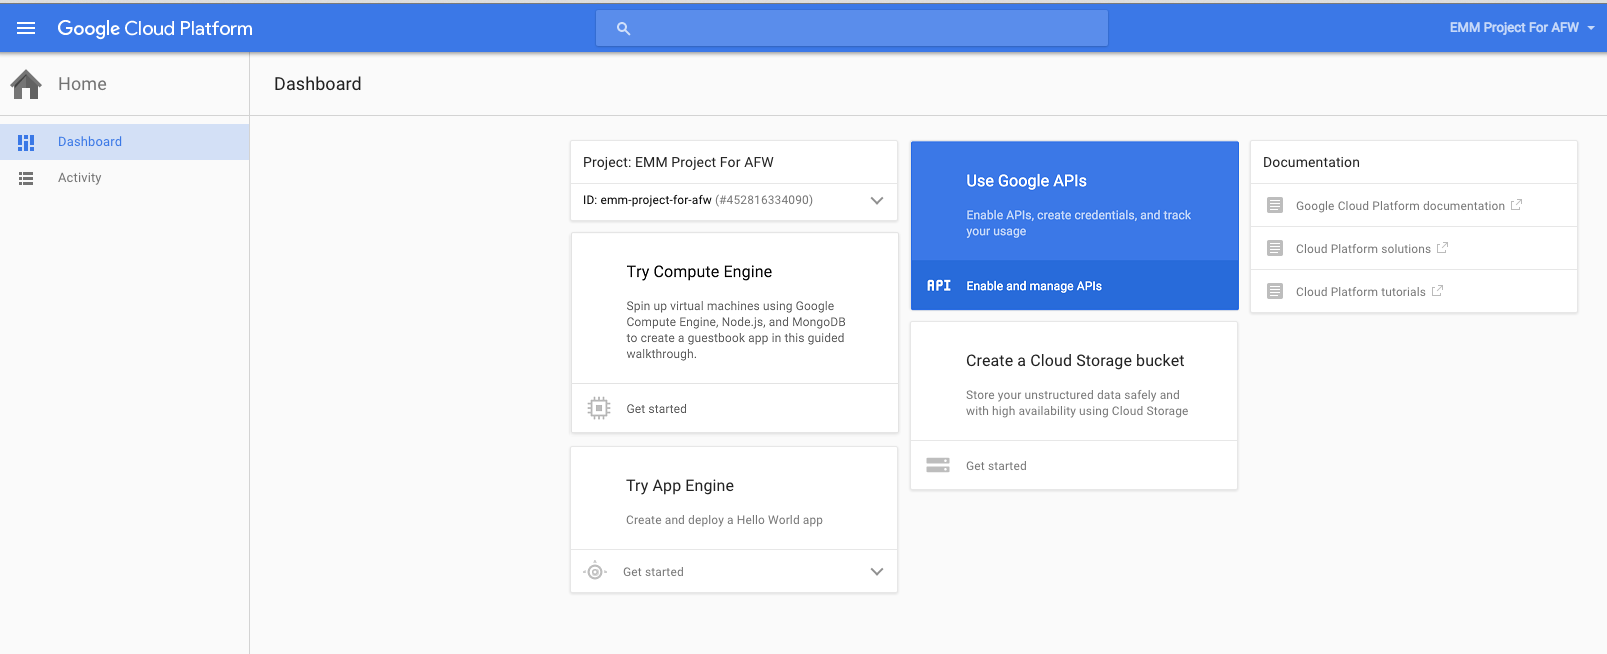 The Use Google APIs option